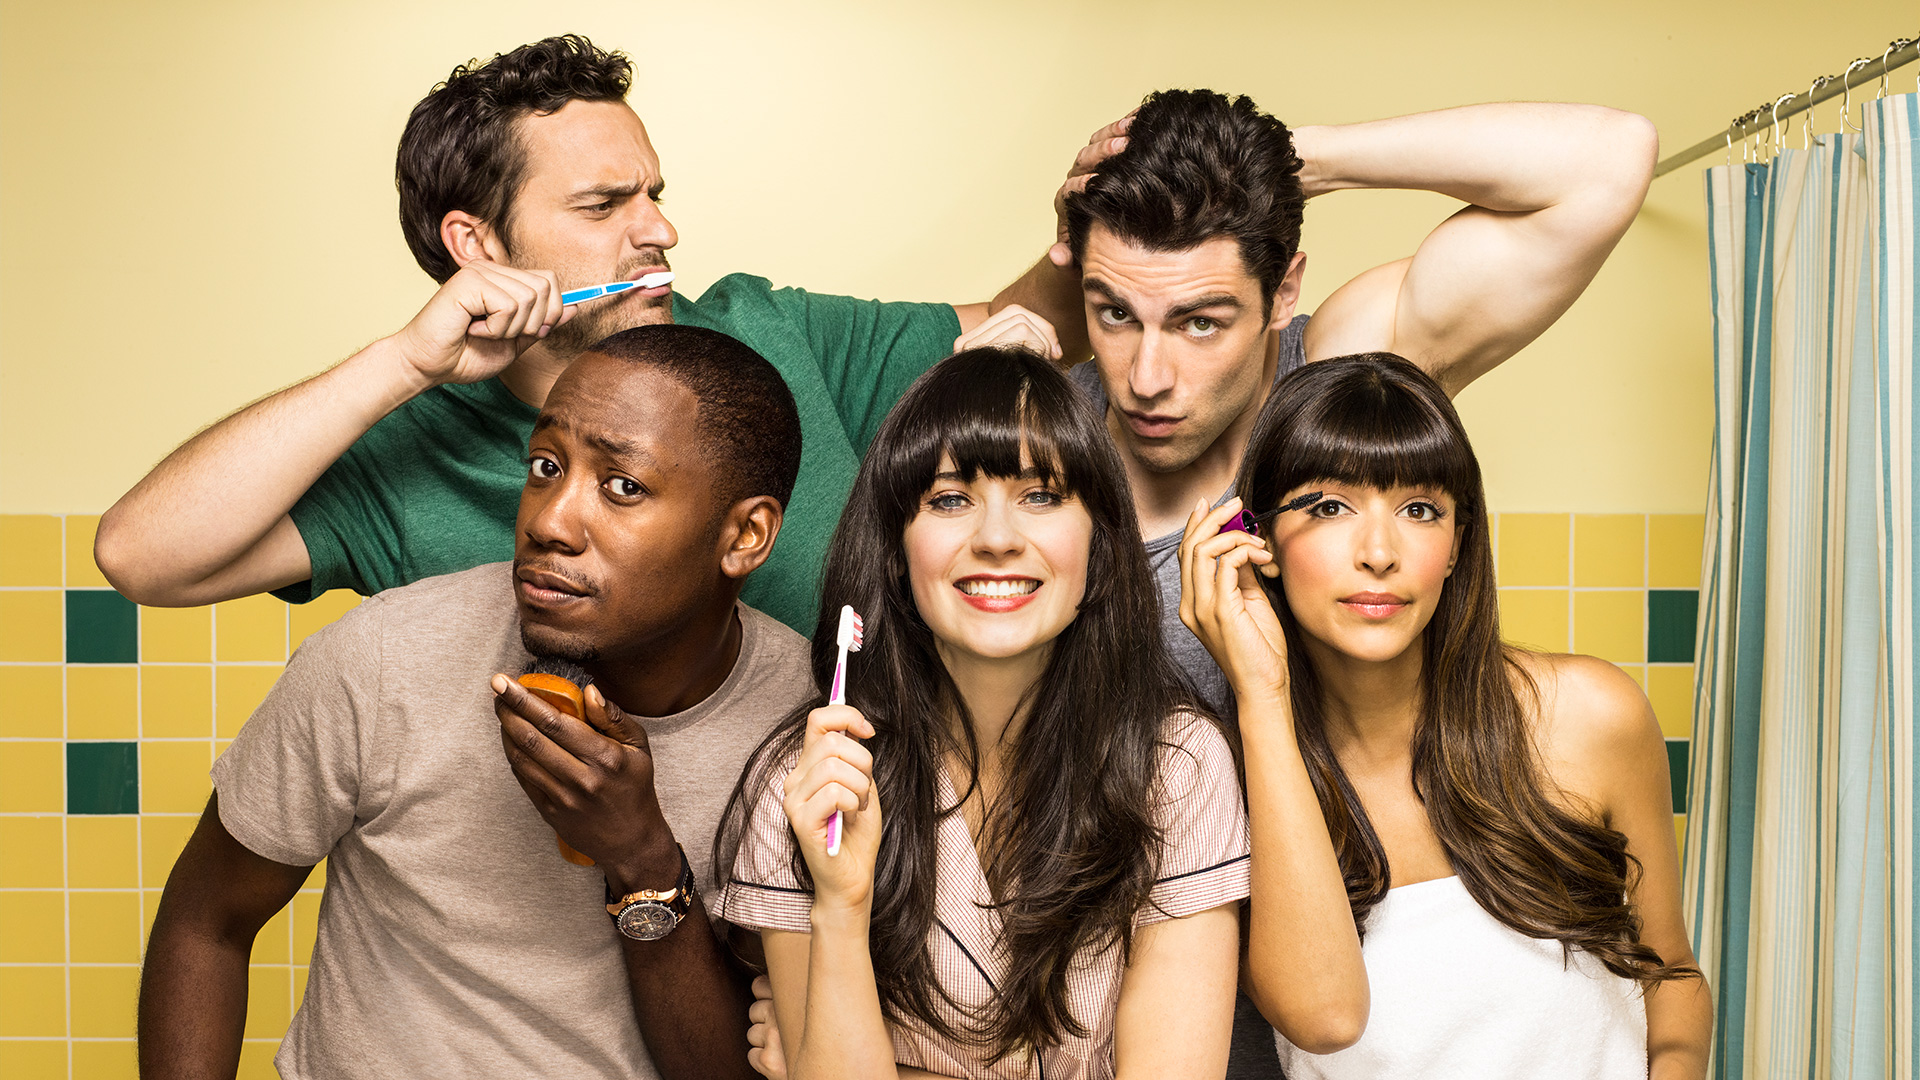 New Girl, série TV, Zooey Deschanel, Jess, Los Angeles